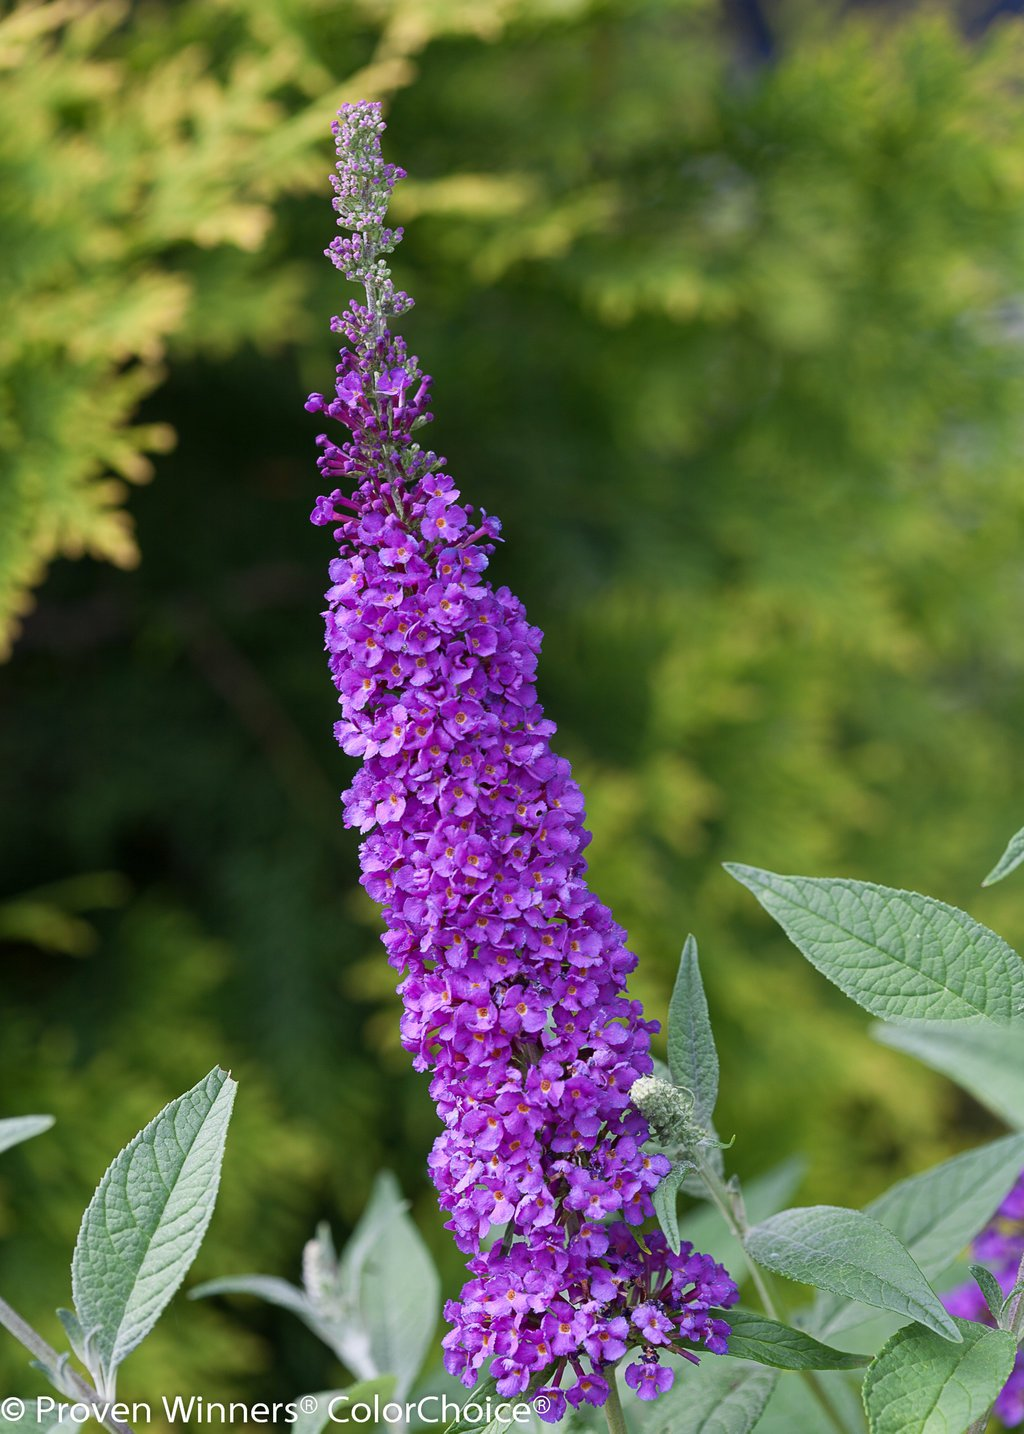 1 Gal. Miss Violet Butterfly Bush (Buddleia) Live Shrub, Purple Flowers by Proven Winners (Image #5)